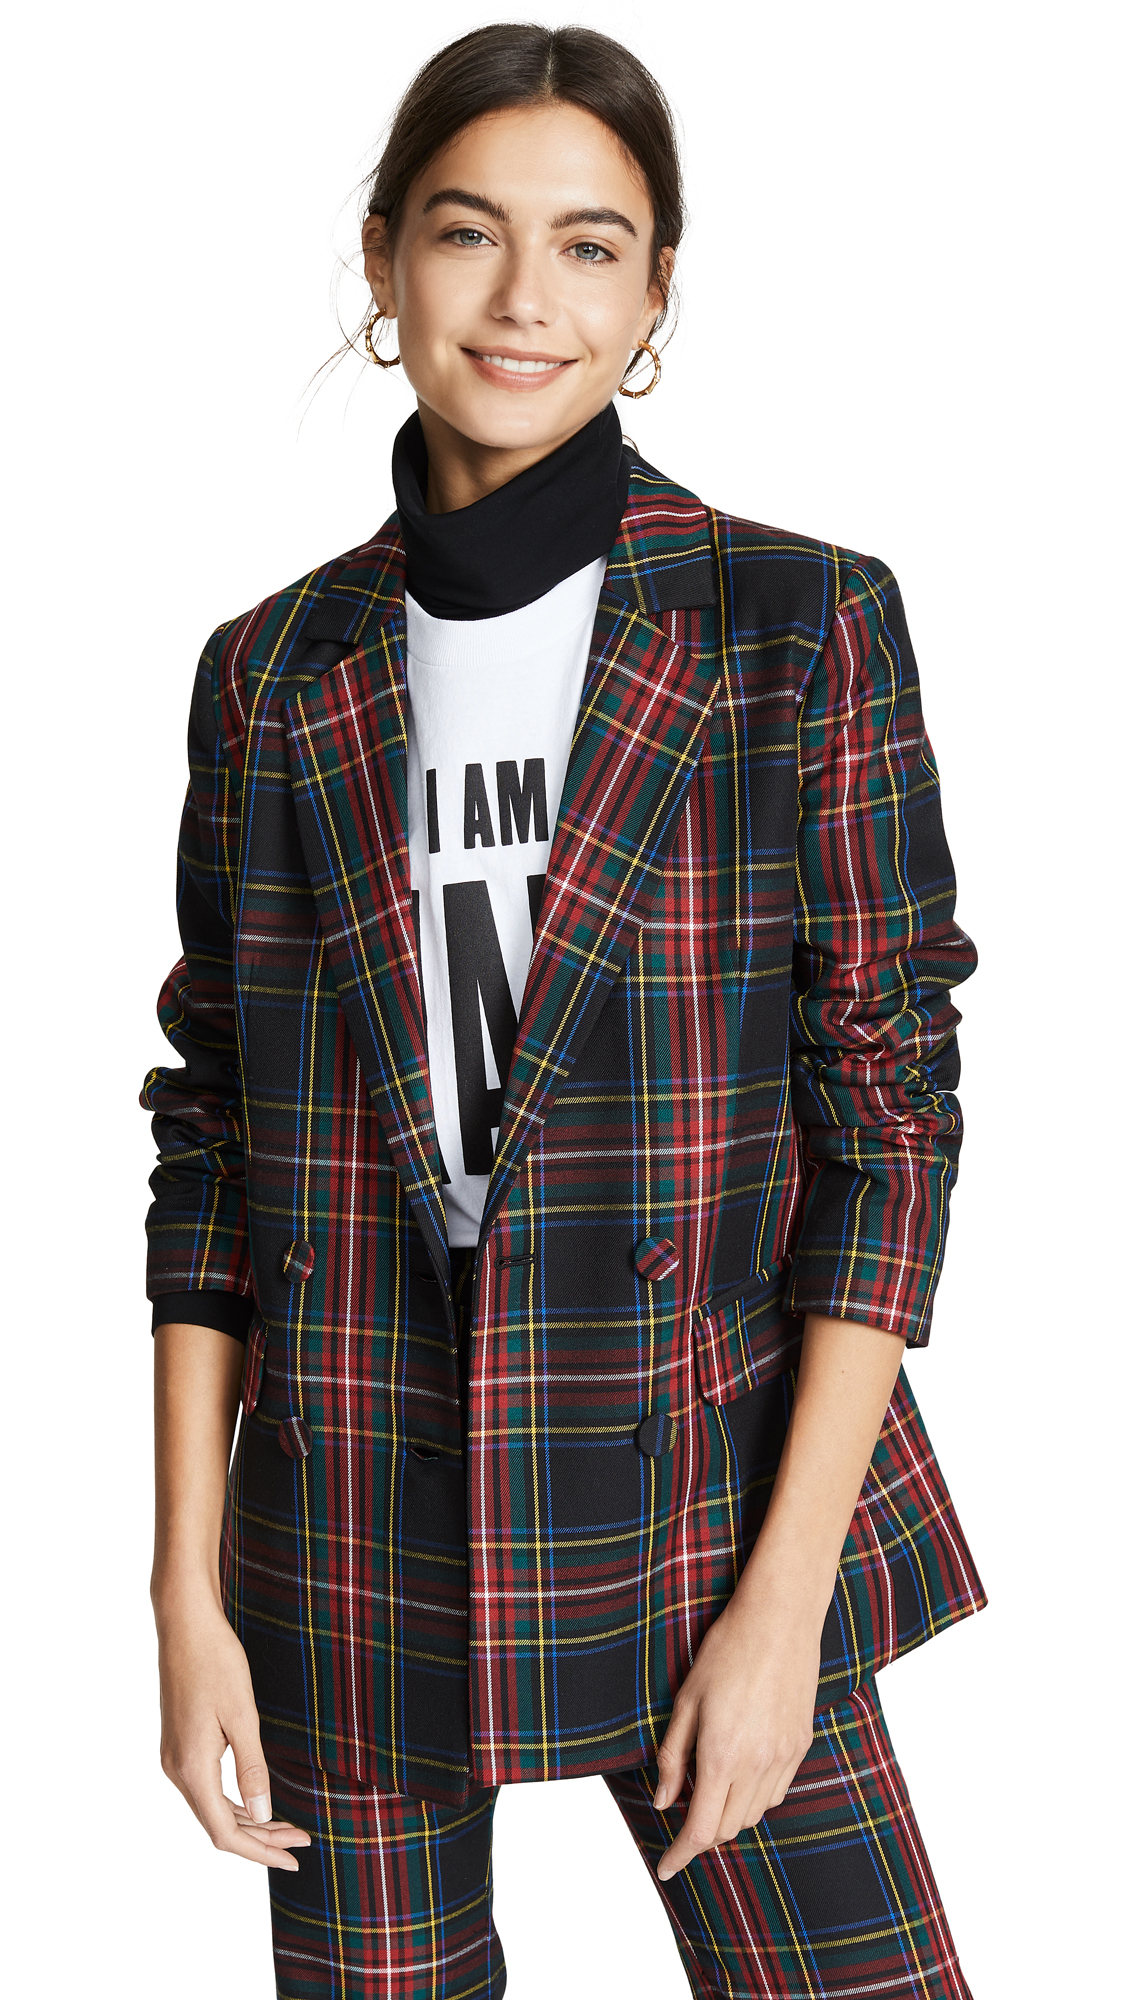 Cynthia Rowley Plaid Blazer - Plaid